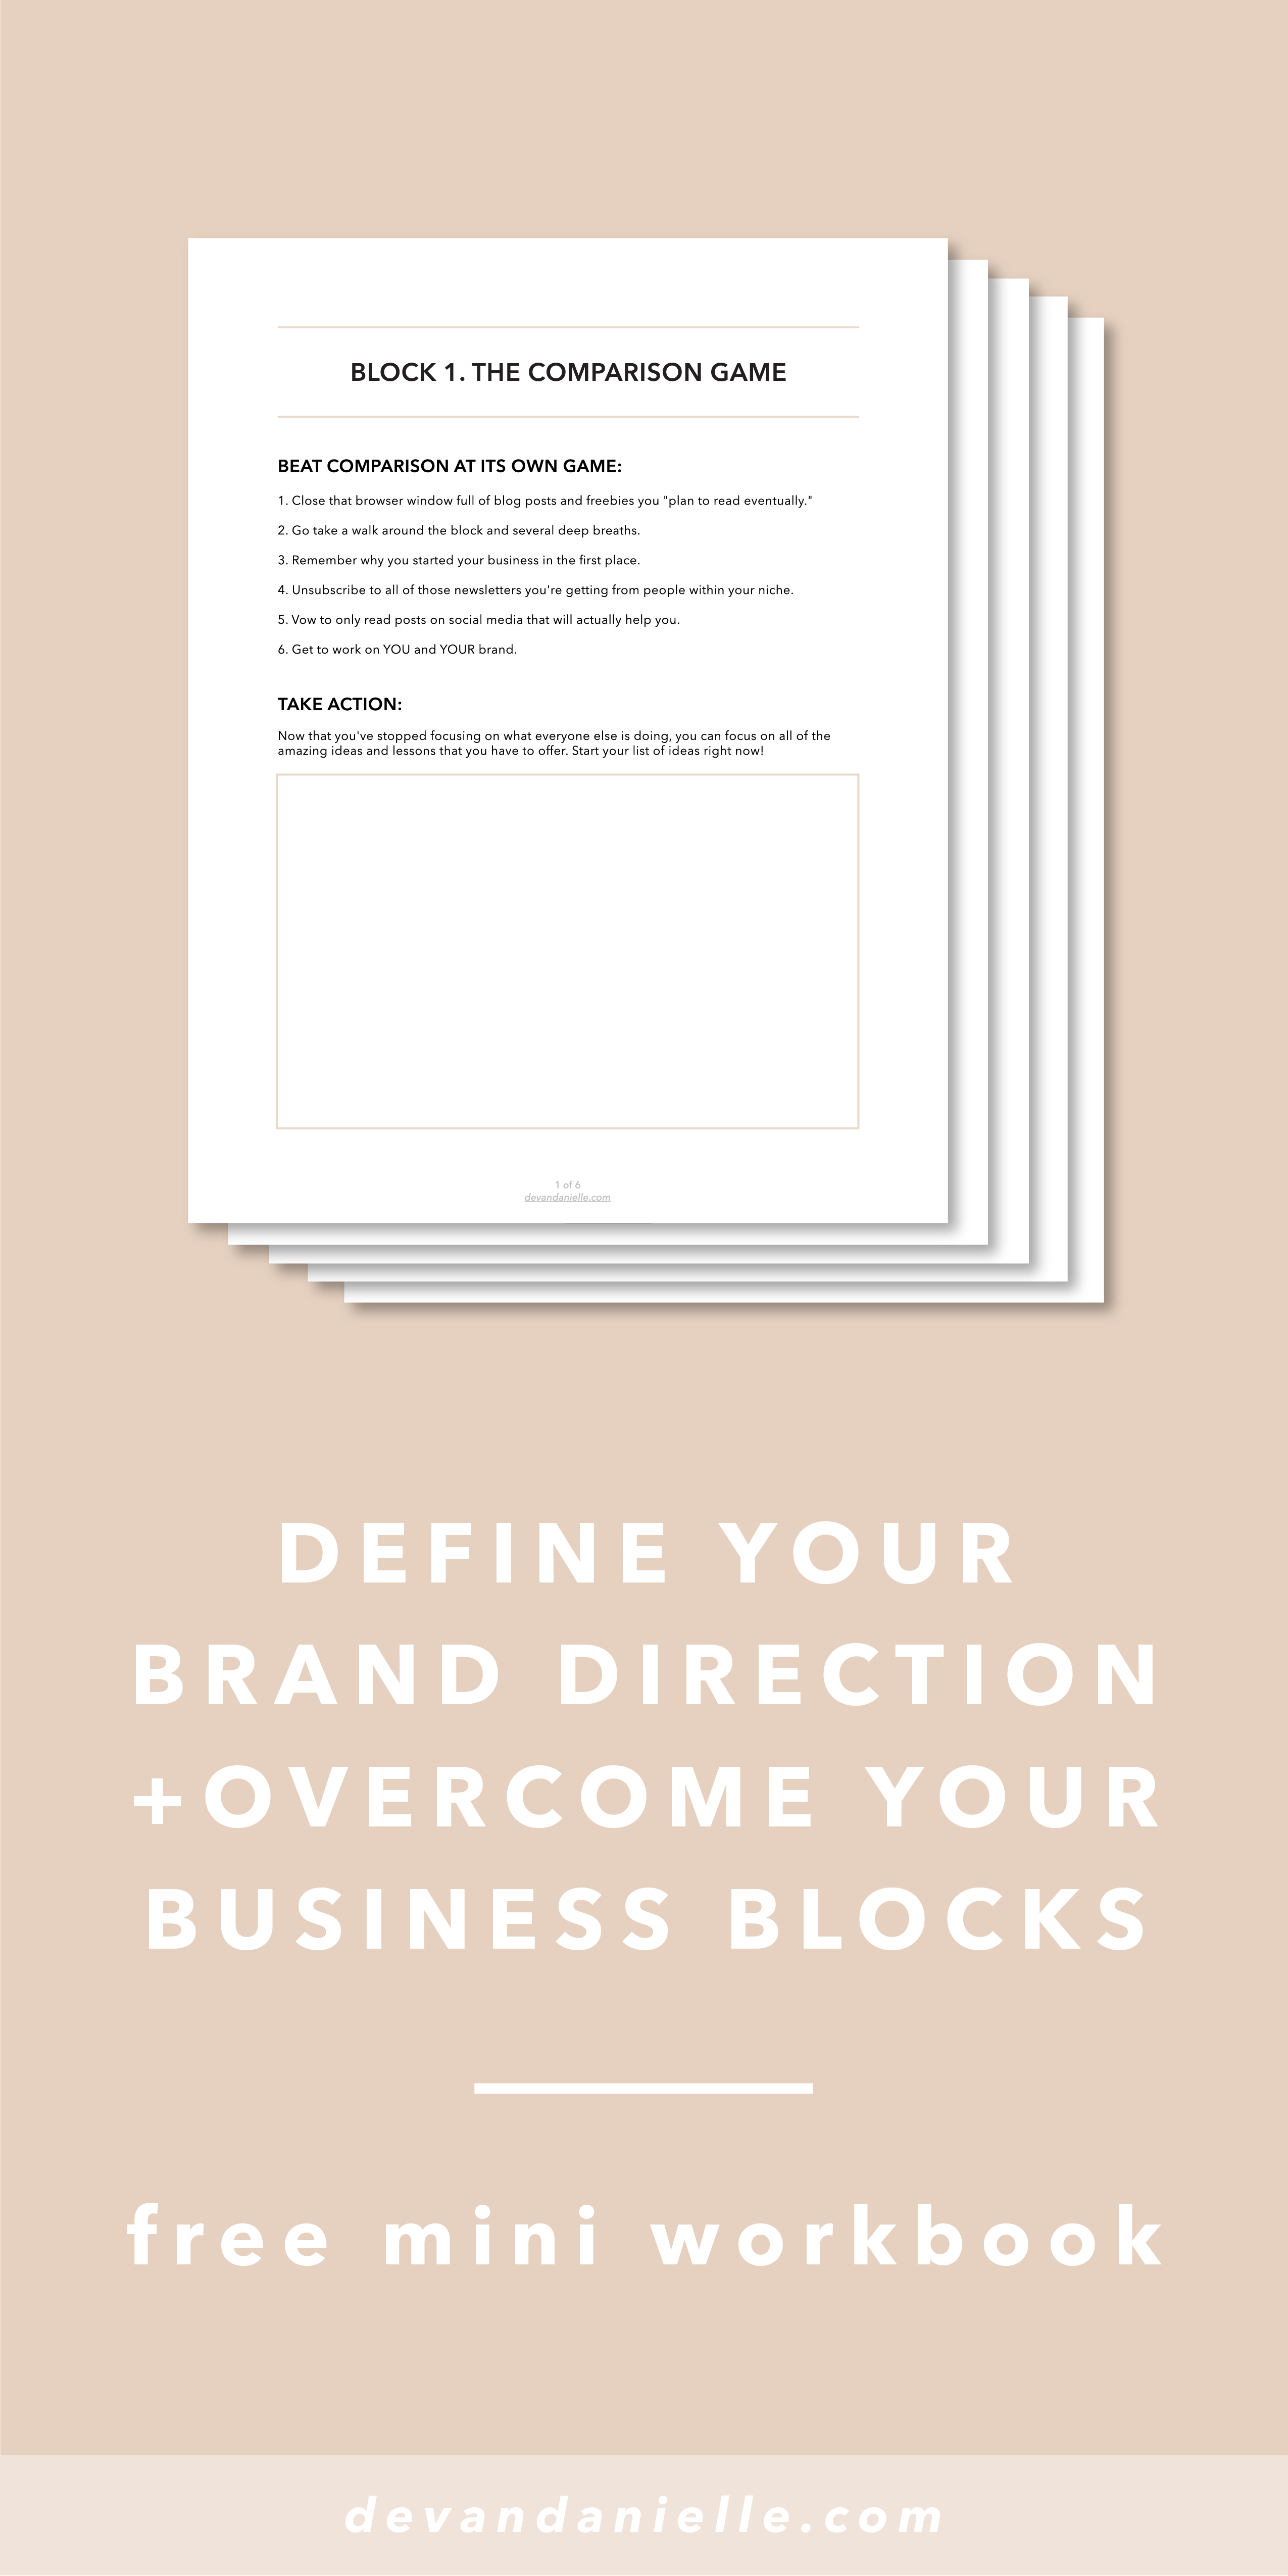 Define Your Brand Direction and Overcome Your Business Blocks with this free mini workbook by Devan Danielle — If you've battled with the comparison game, lack of confidence, time management, consistency, and / or hearing crickets you need this mini workbook to overcome your business blocks and define your brand direction once and for all. Download the free workbook now!